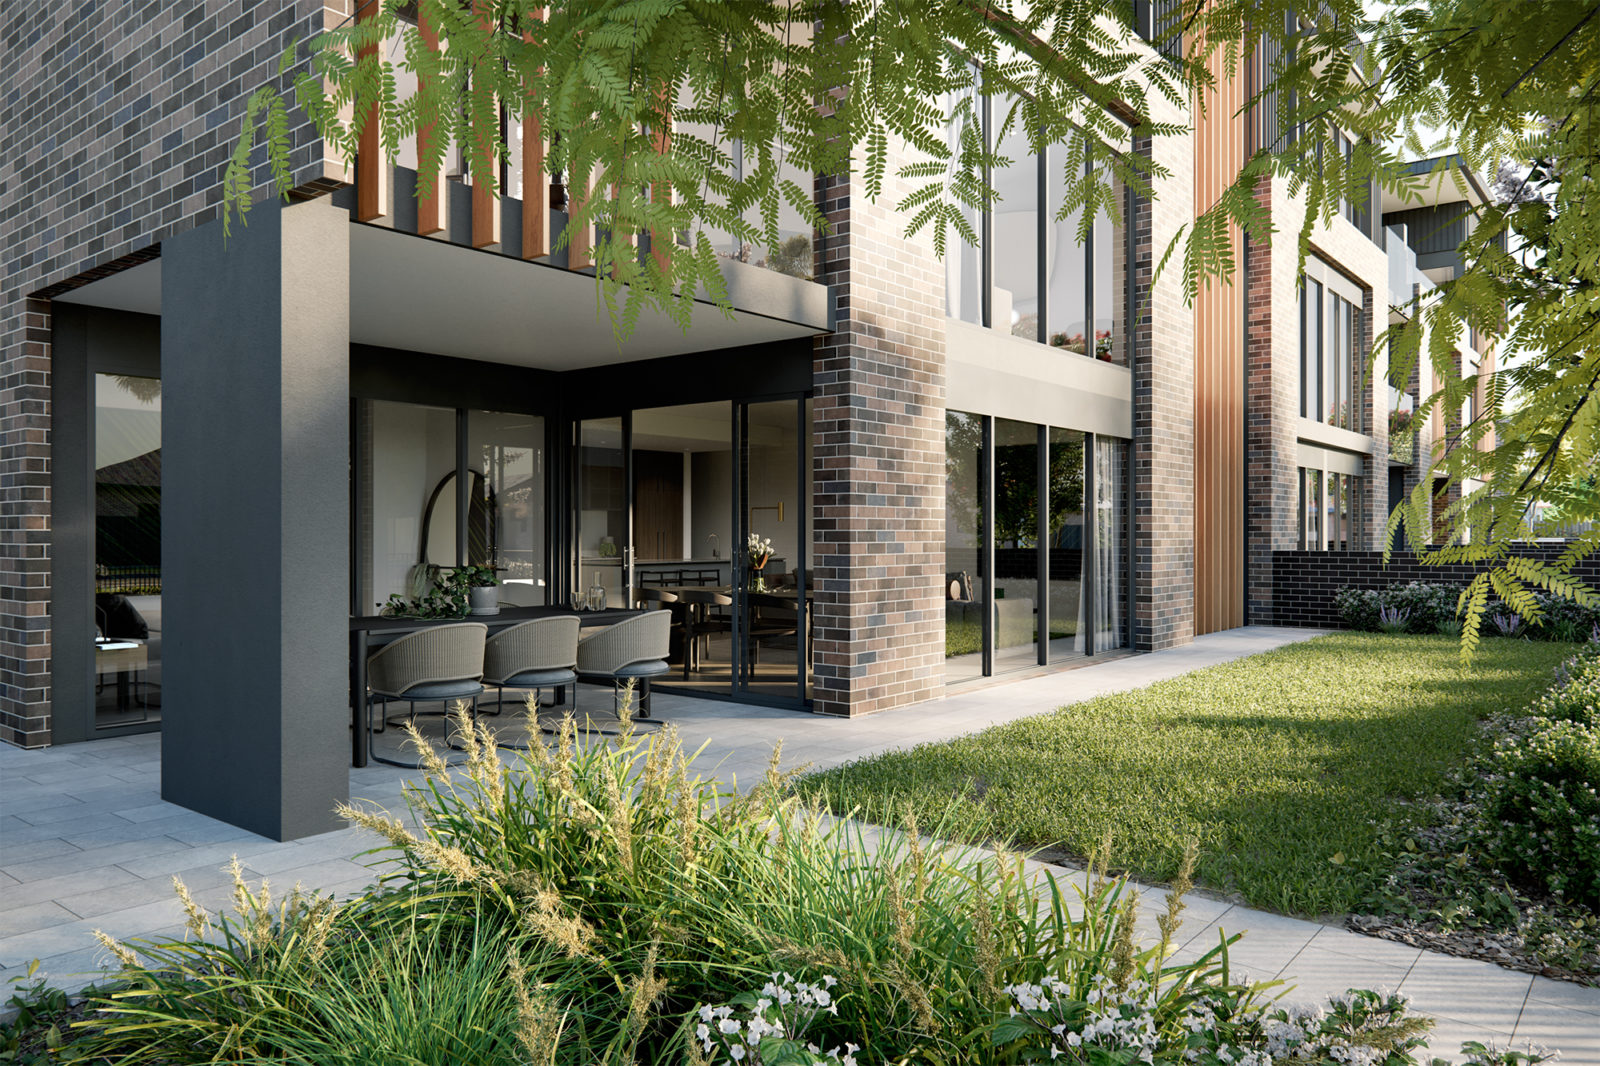 1_1_19030-kiara-narrabundah-cgi14-apt-3b-courtyard-final-web